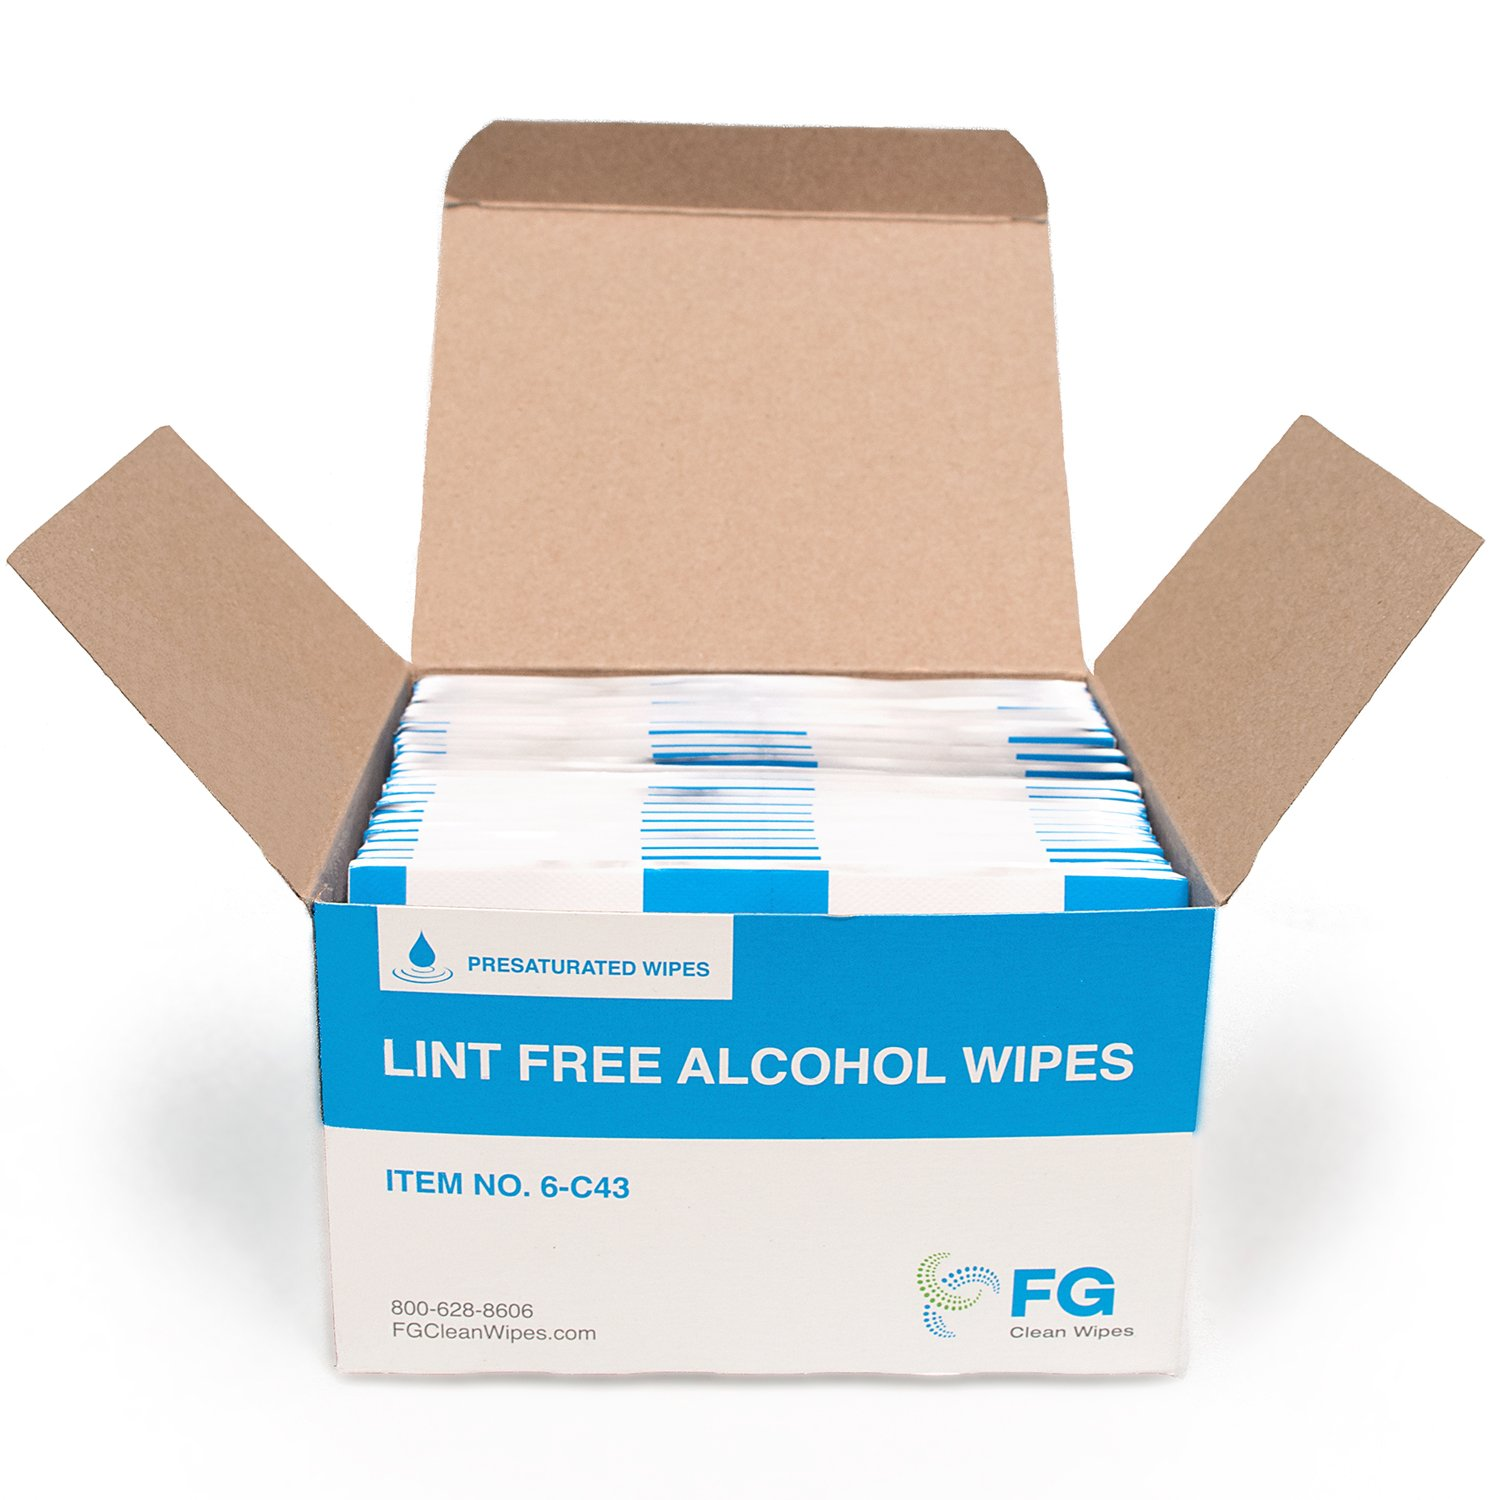 FG Clean Wipes 6-C43 Lint Free Presaturated Wipes (Box of 60) by FG Clean Wipes (Image #4)